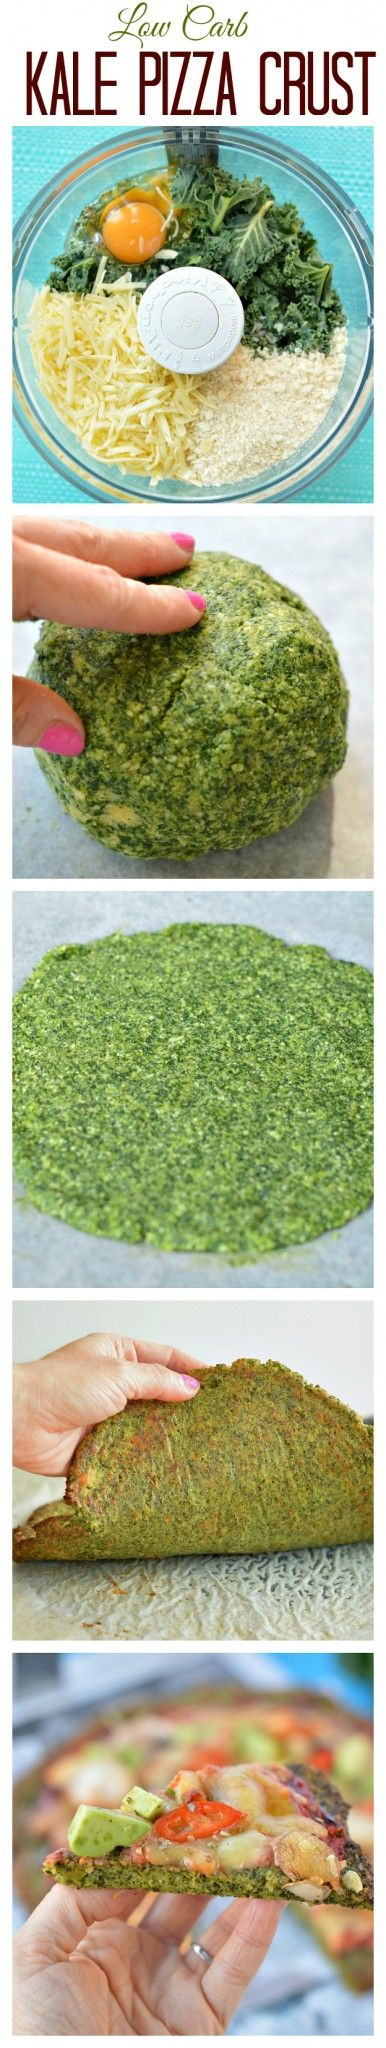 Pizzaboden mit Grünkohl - geniessen fast ohne Kohlenhydrate *** Kale Pizza Crust Low Carb steps by steps